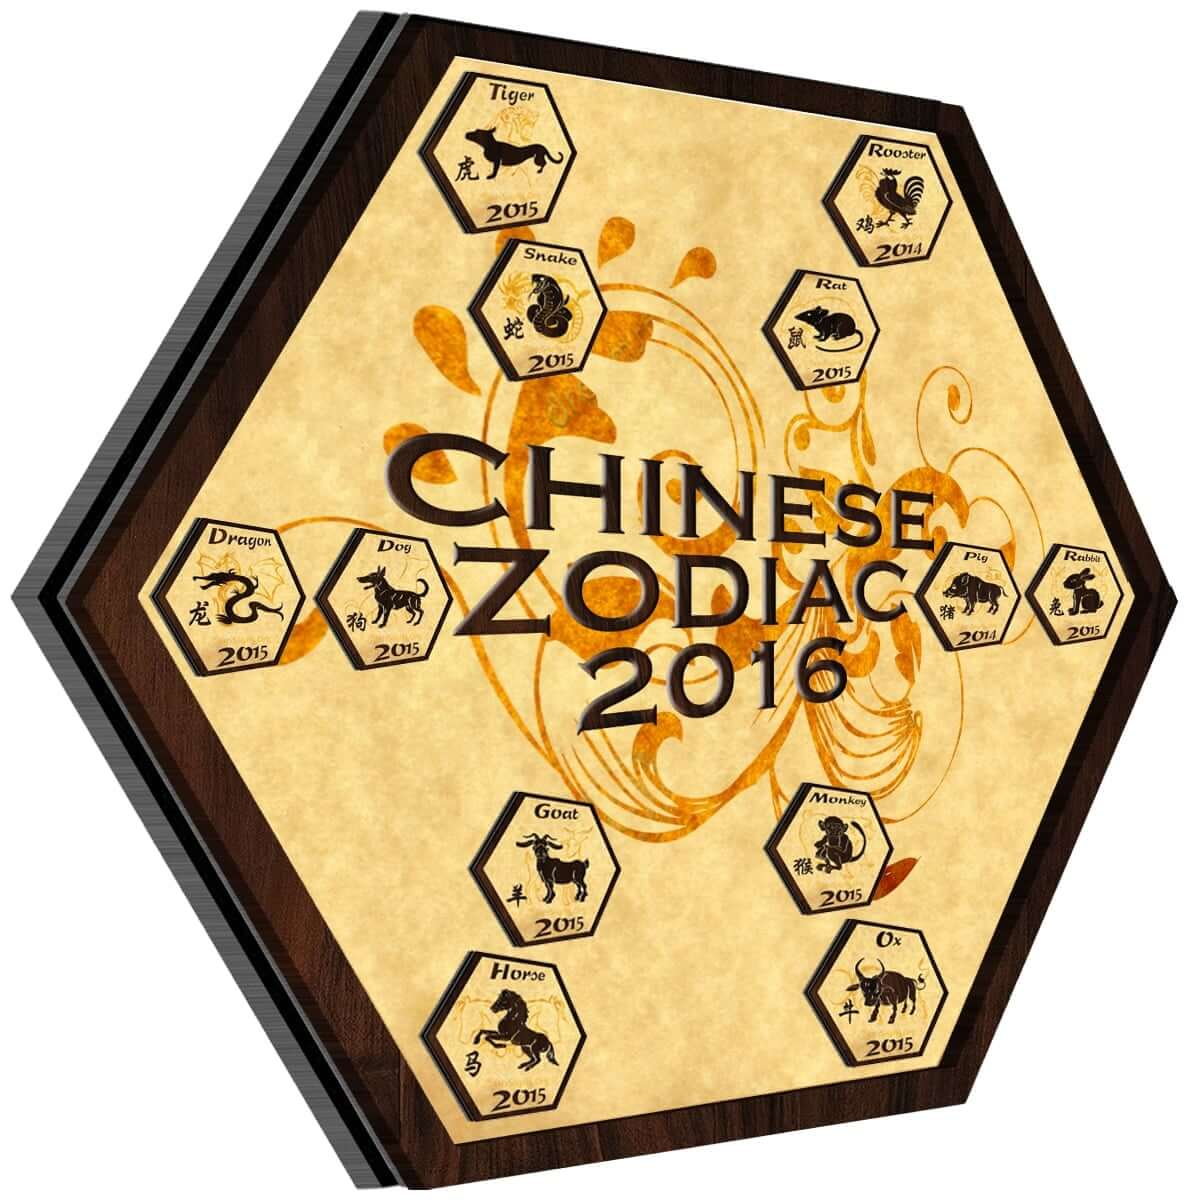 Chinese Zodiac 2016 Infographic Sunsigns Org